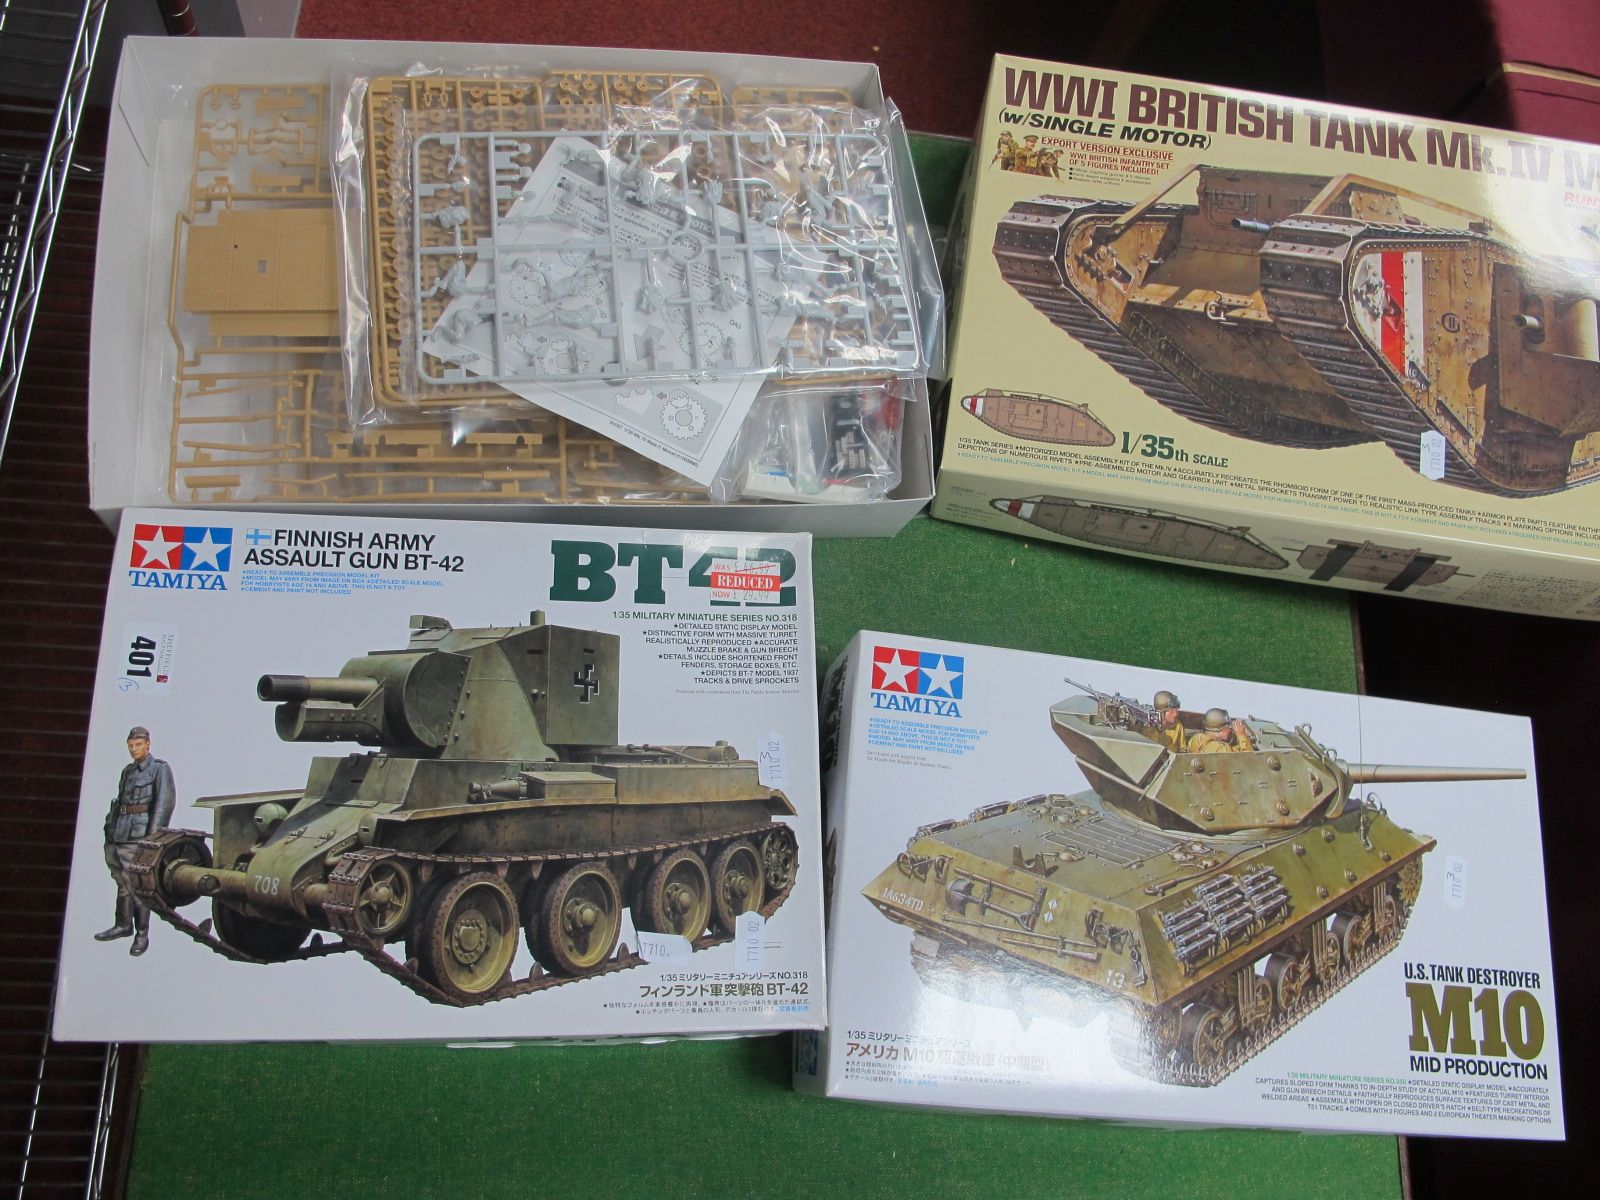 Three 1/35th Scale, to include Finnish Army Assault Gun BT-42, US Tank Destroyer M10 and WWI British